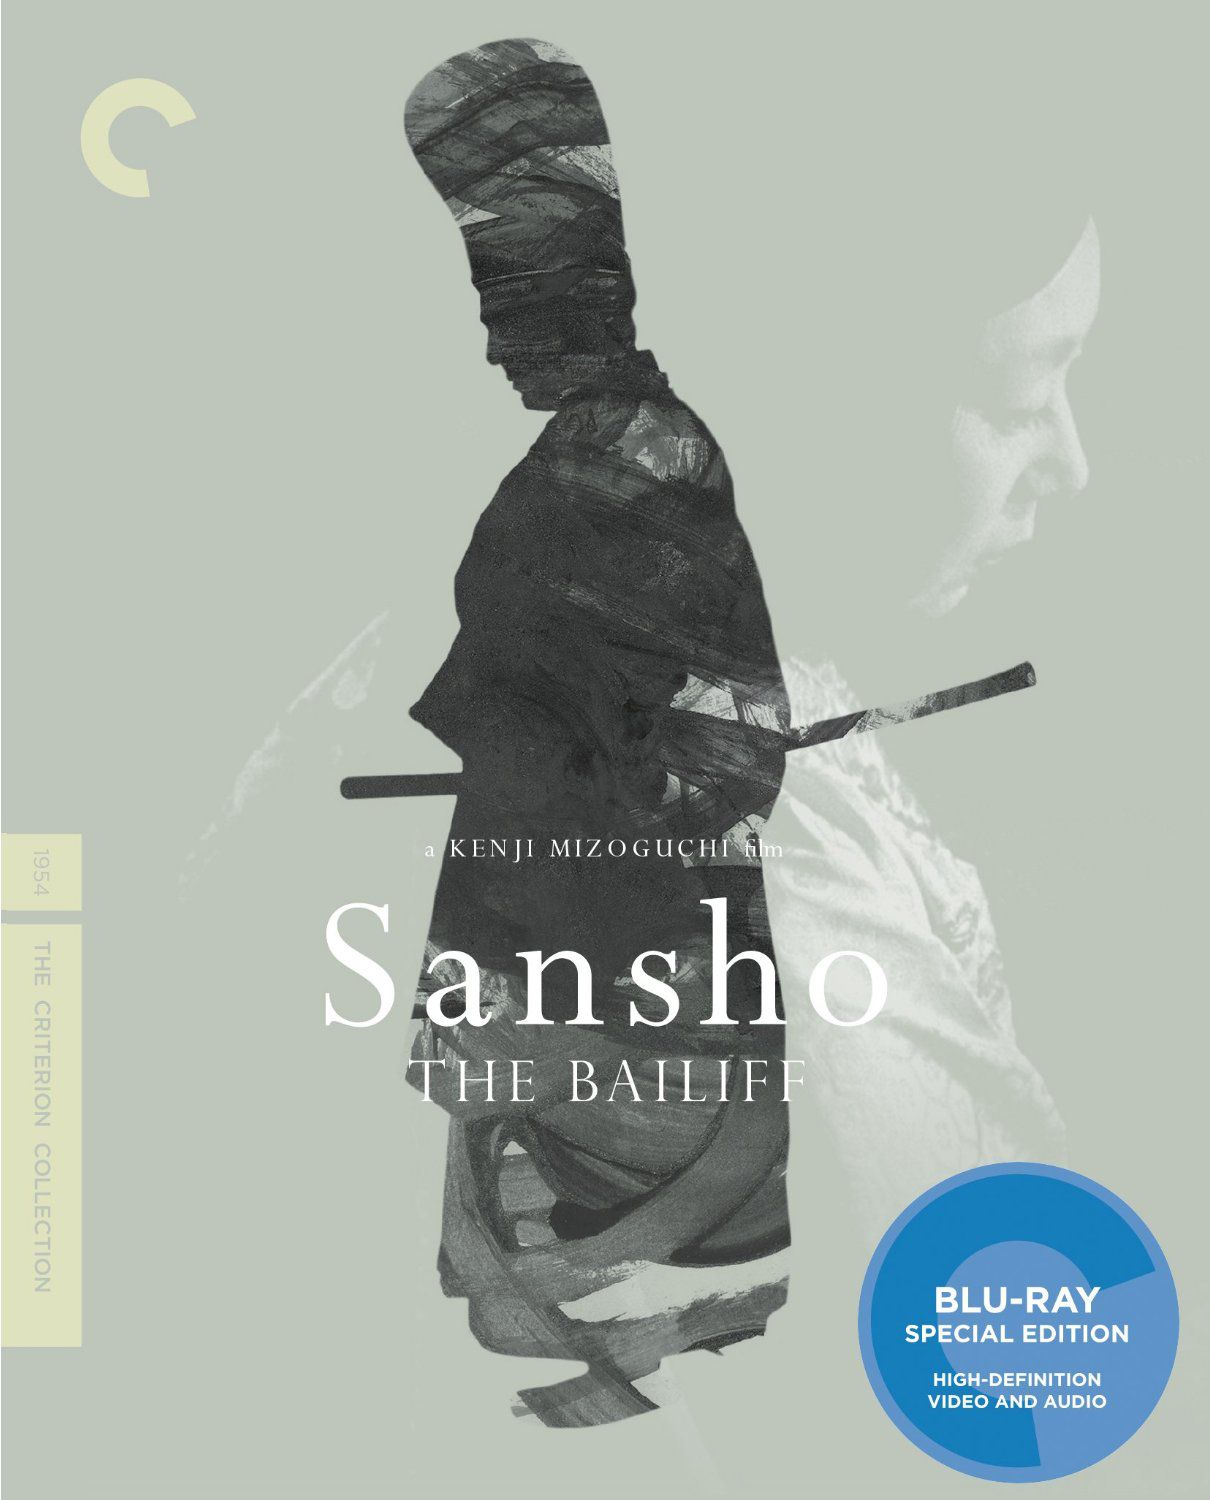 Publicity still for Sansho the Bailiff